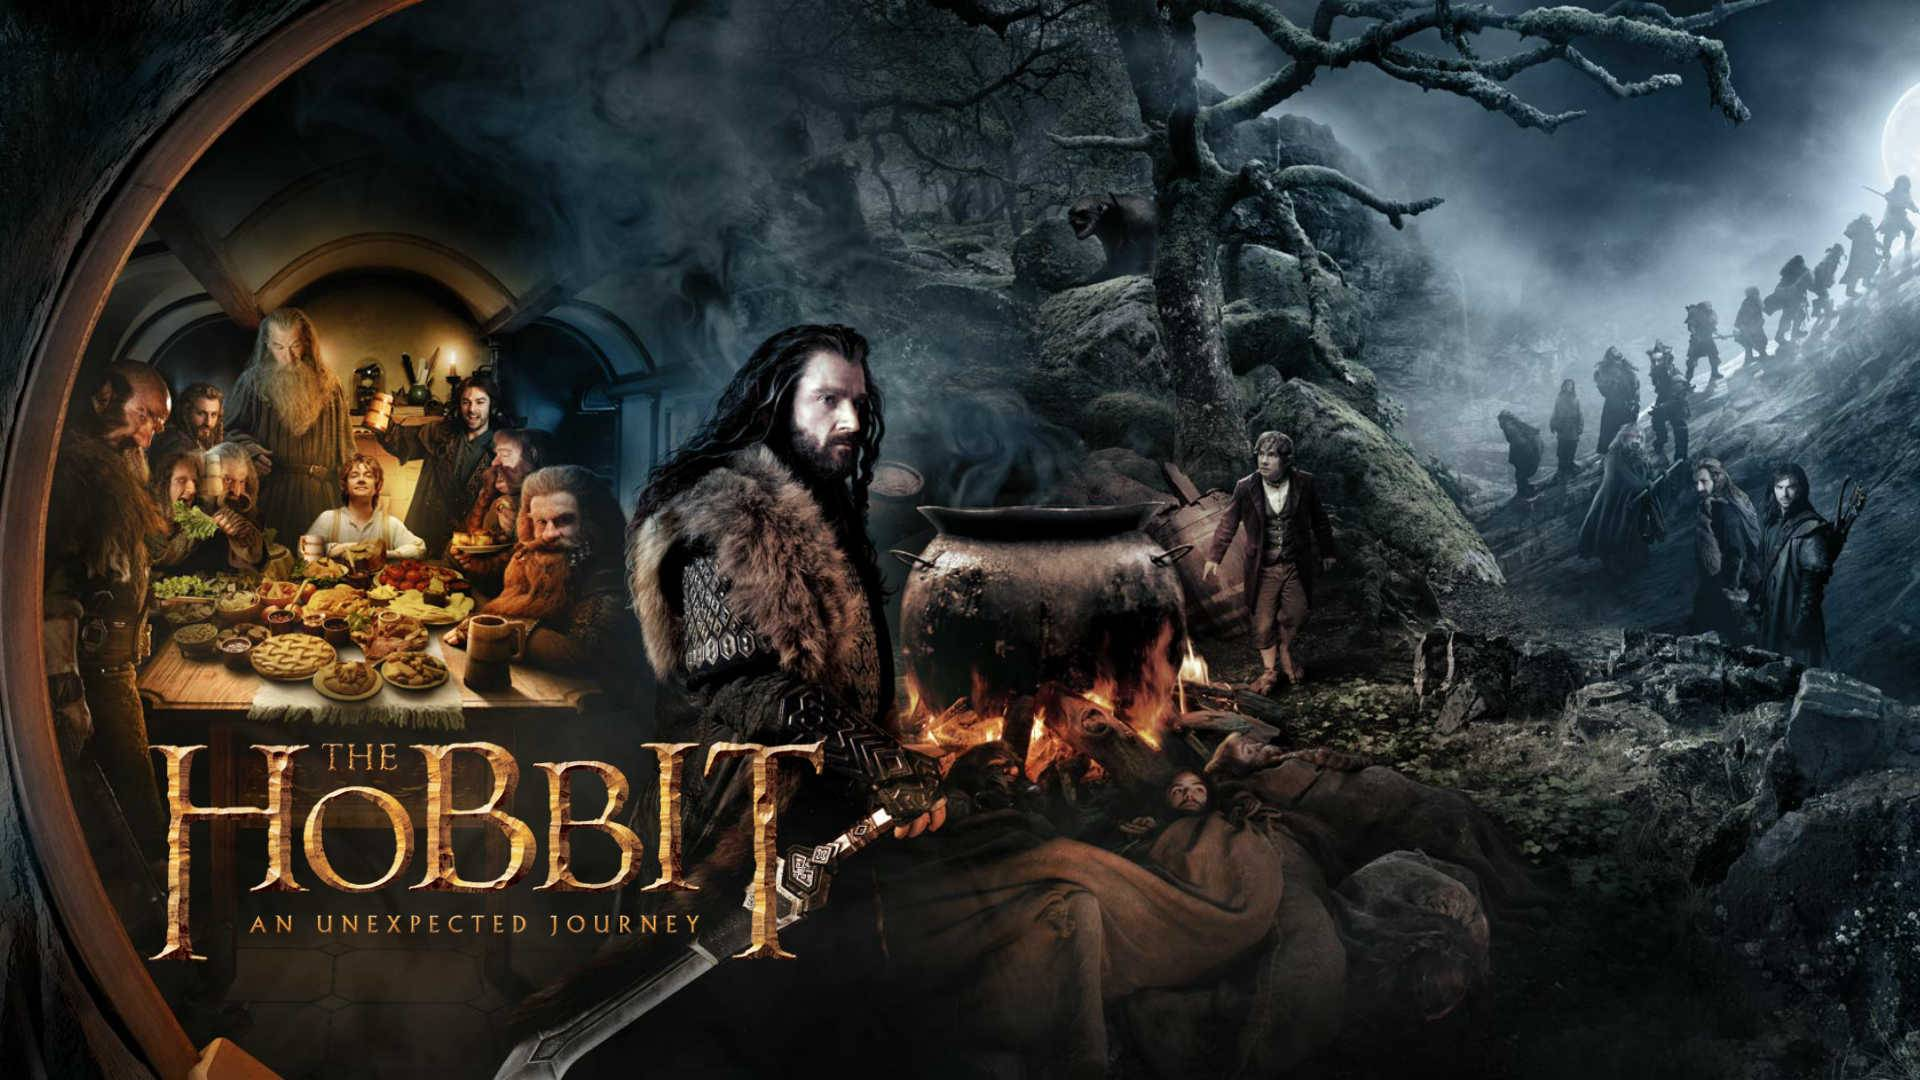 The Hobbit   The Hobbit The Desolation of Smaug Wallpaper 1920x1080